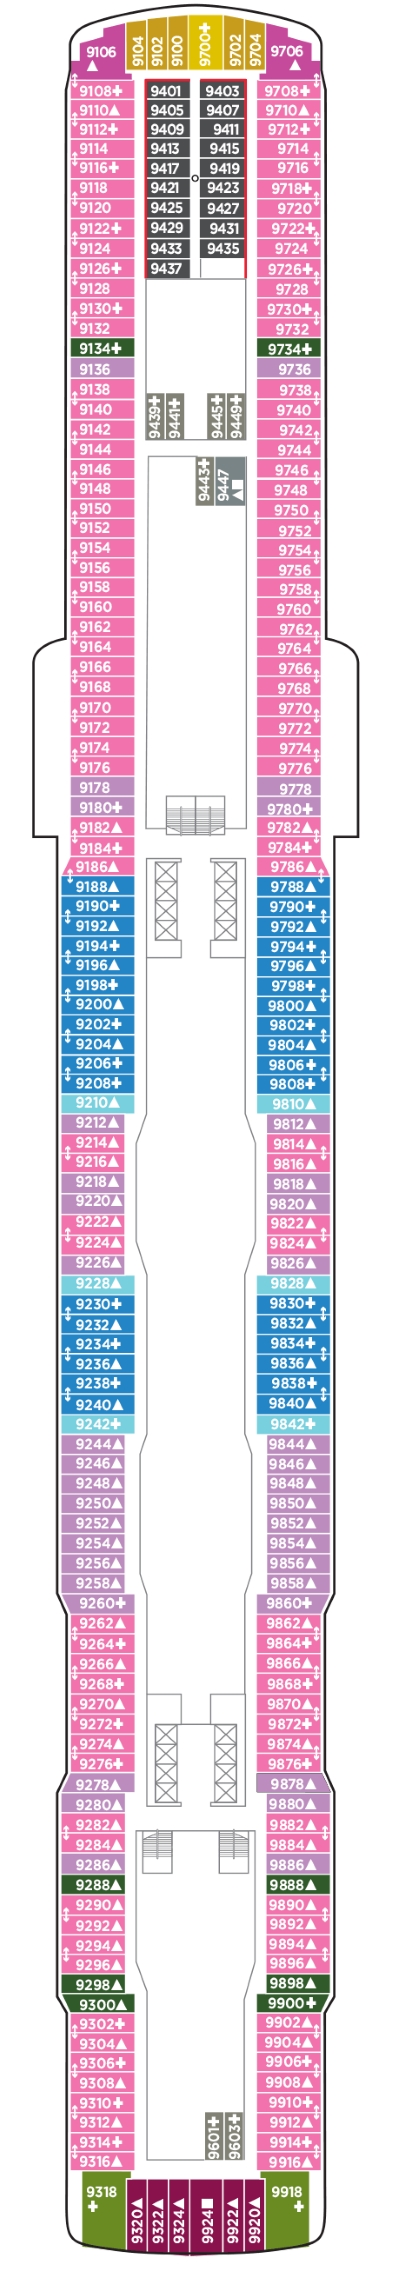 Norwegian Bliss Deck 9 layout